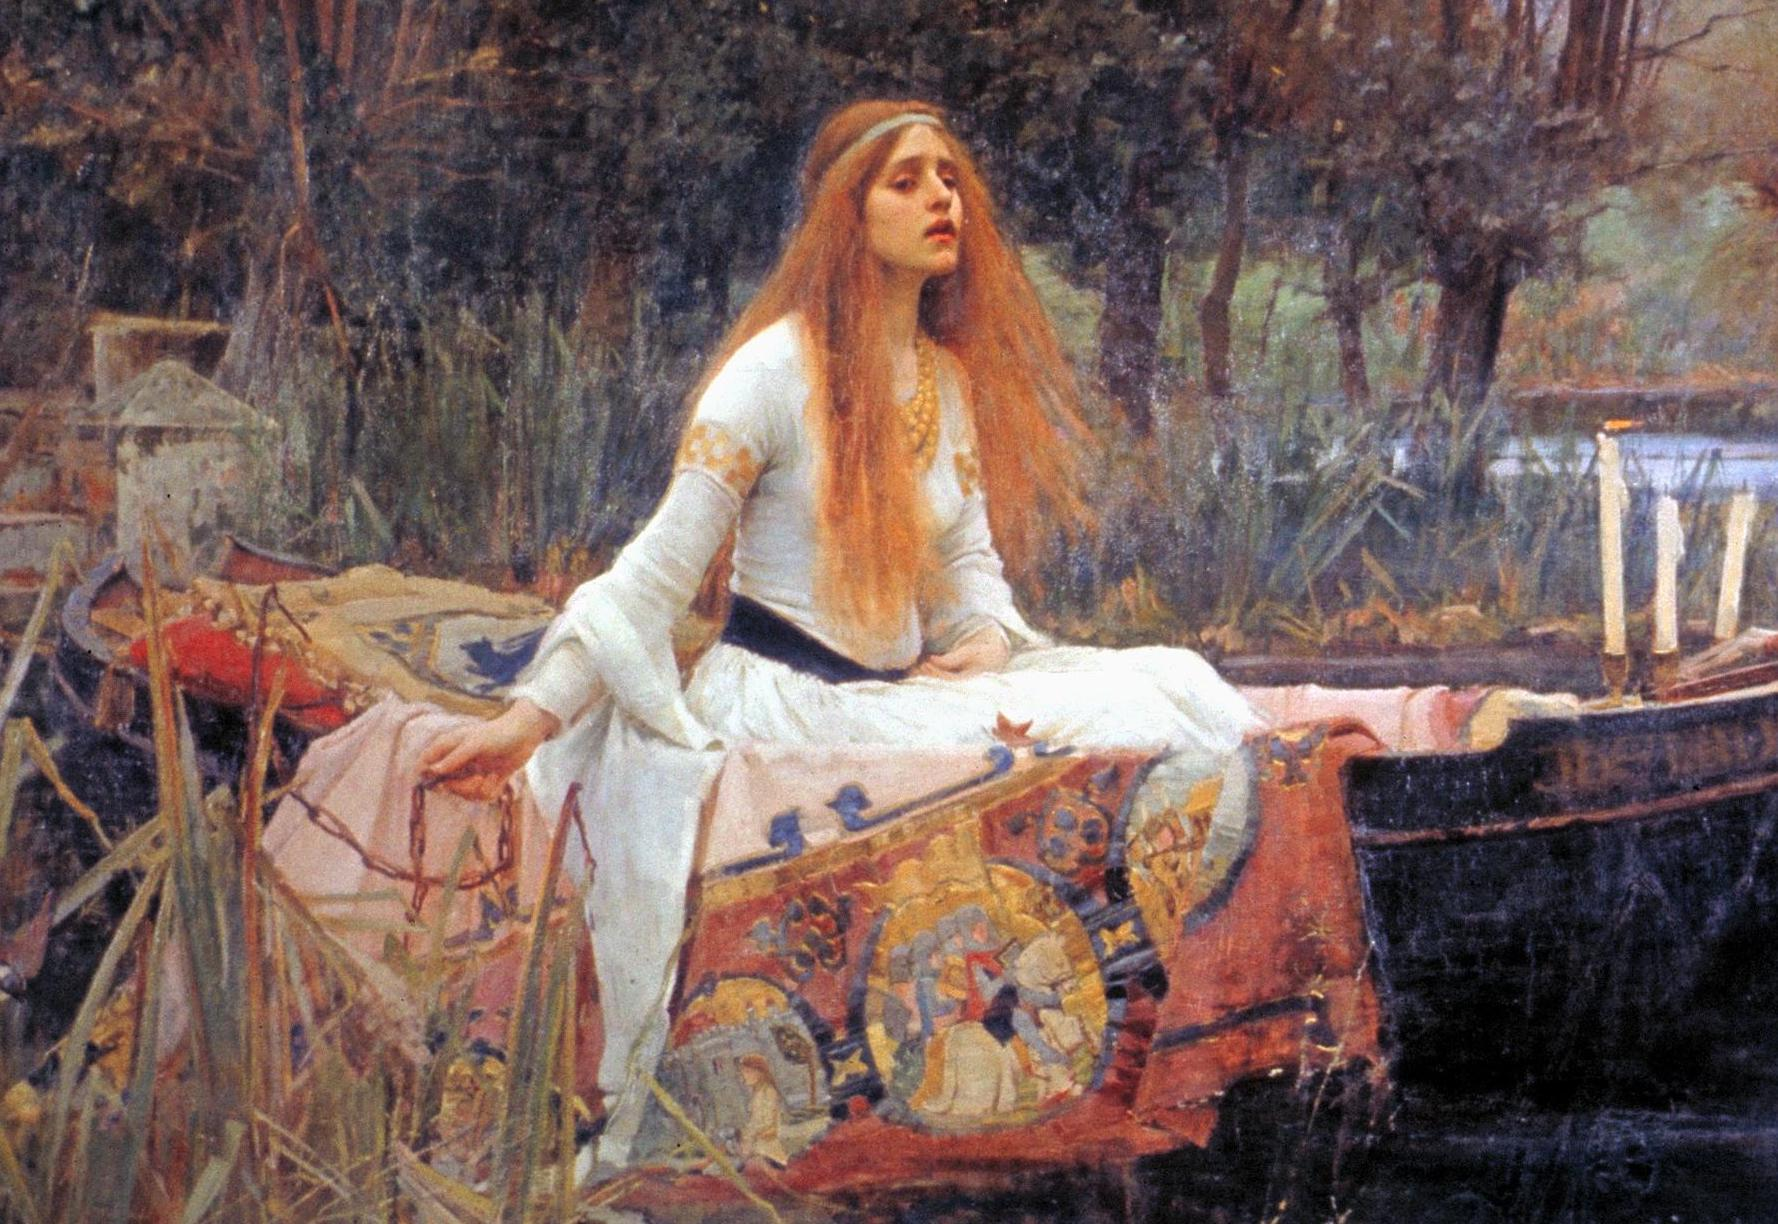 La maledizione della Lady of Shalott. Storia del dipinto di John William Waterhouse